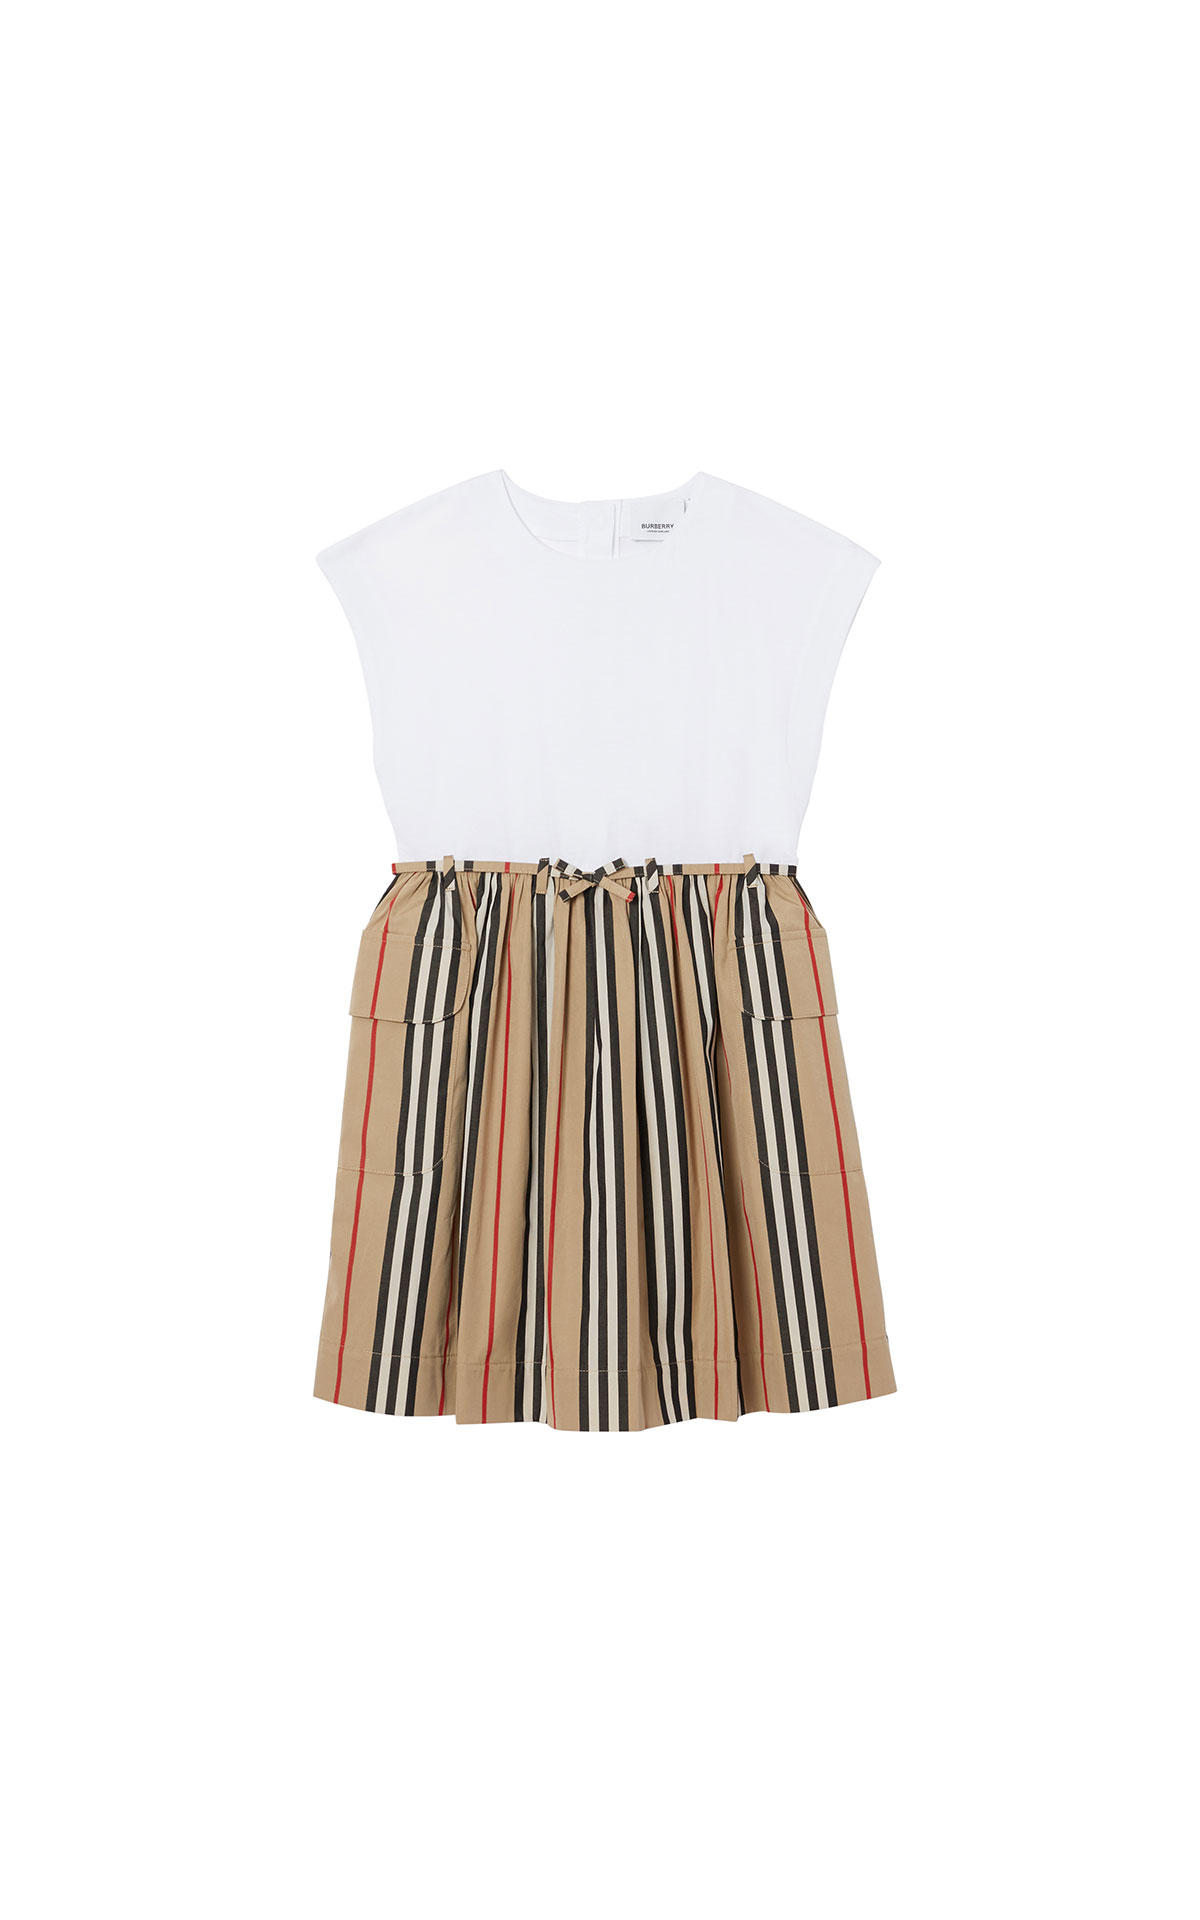 Icon stripe jersey dress from Bicester Village